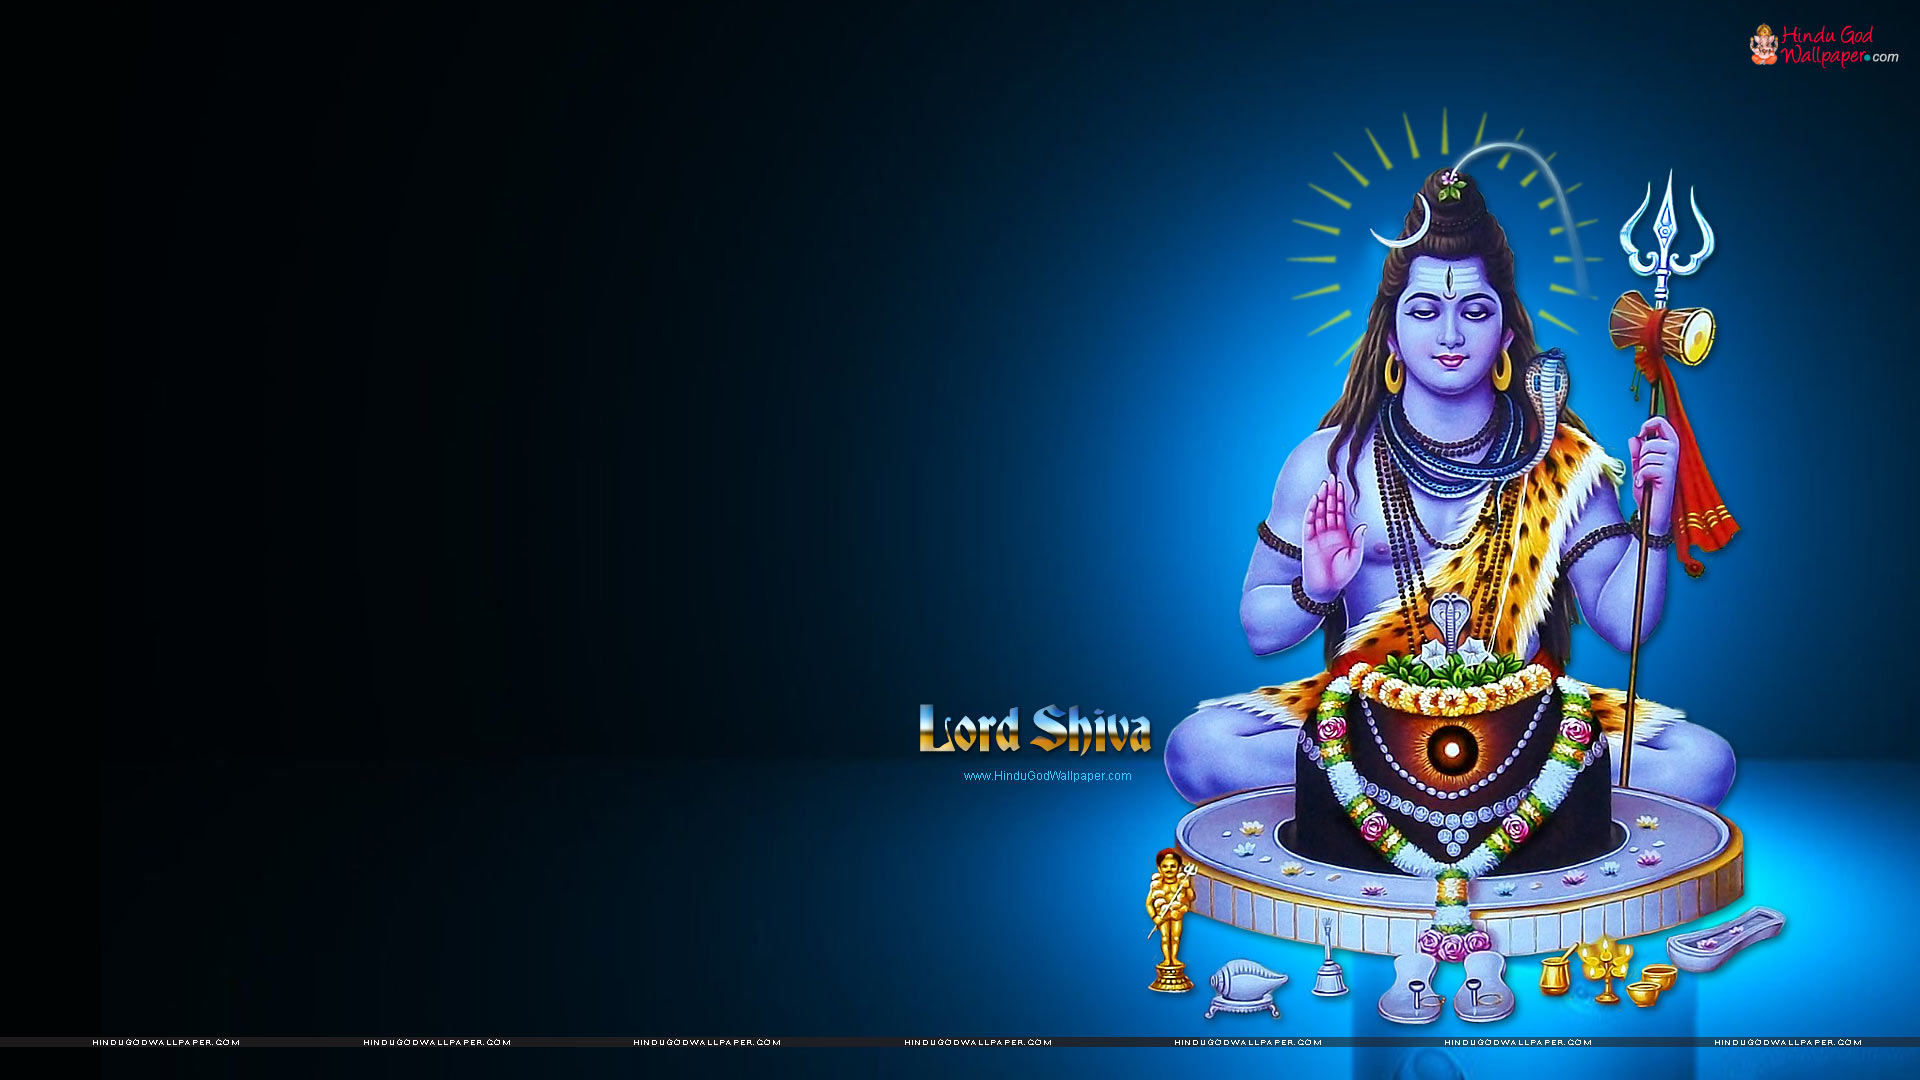 lord shiva still image picture photo wallpaper 1920x1080